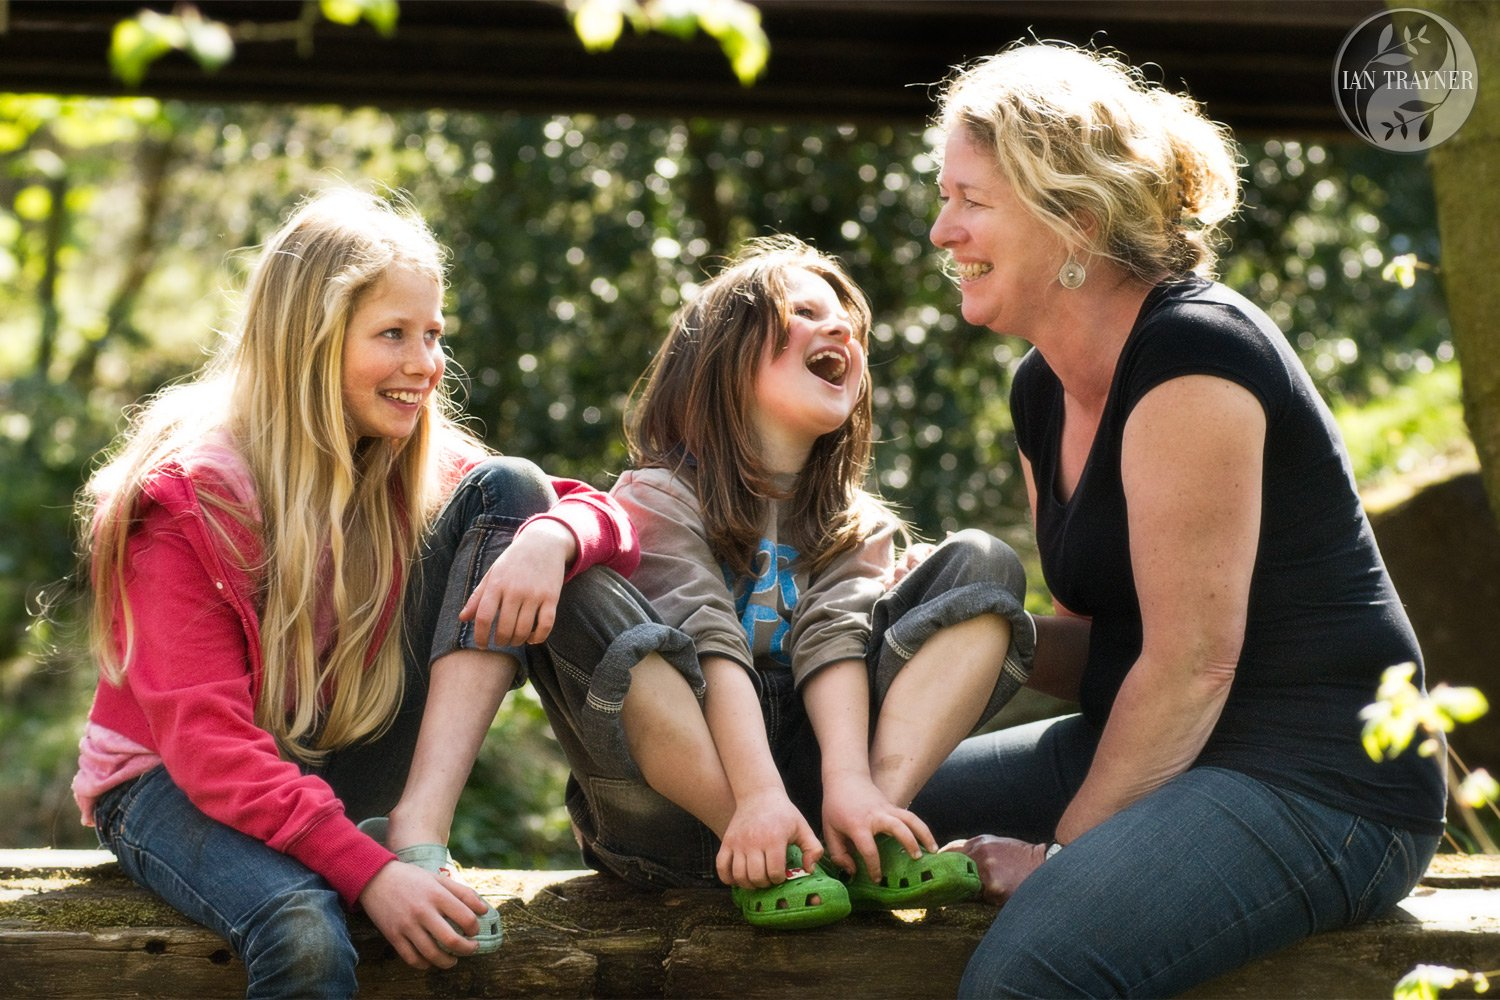 Happy family photography. Mother with two daughters laughing in the sunshine. Lifestyle family photo shoot on location.